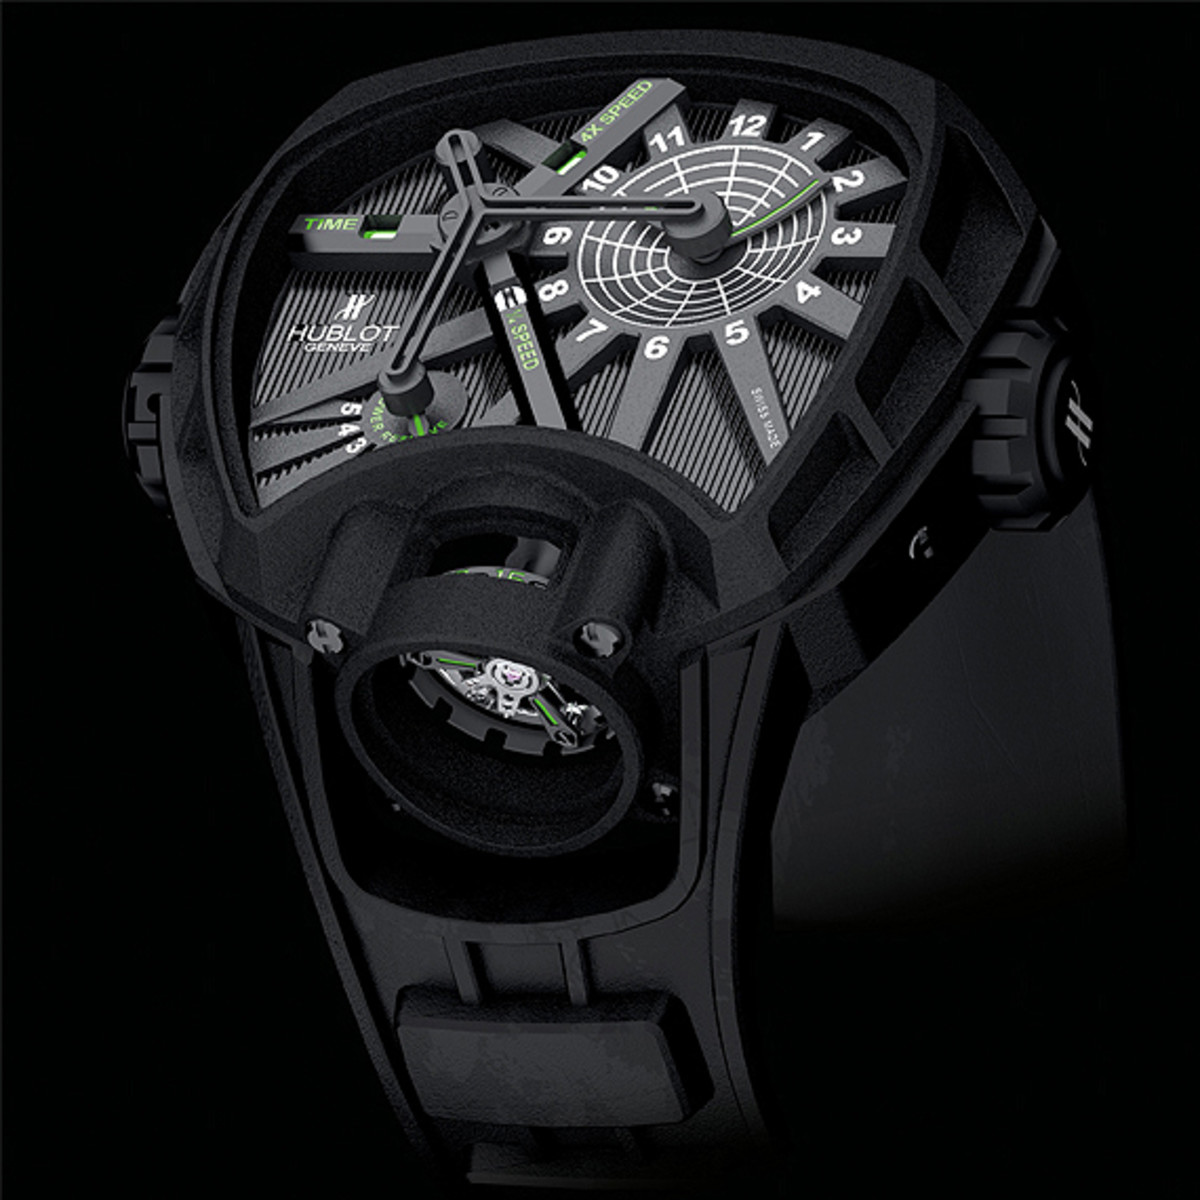 hublot-mp-02-key-of-time-06